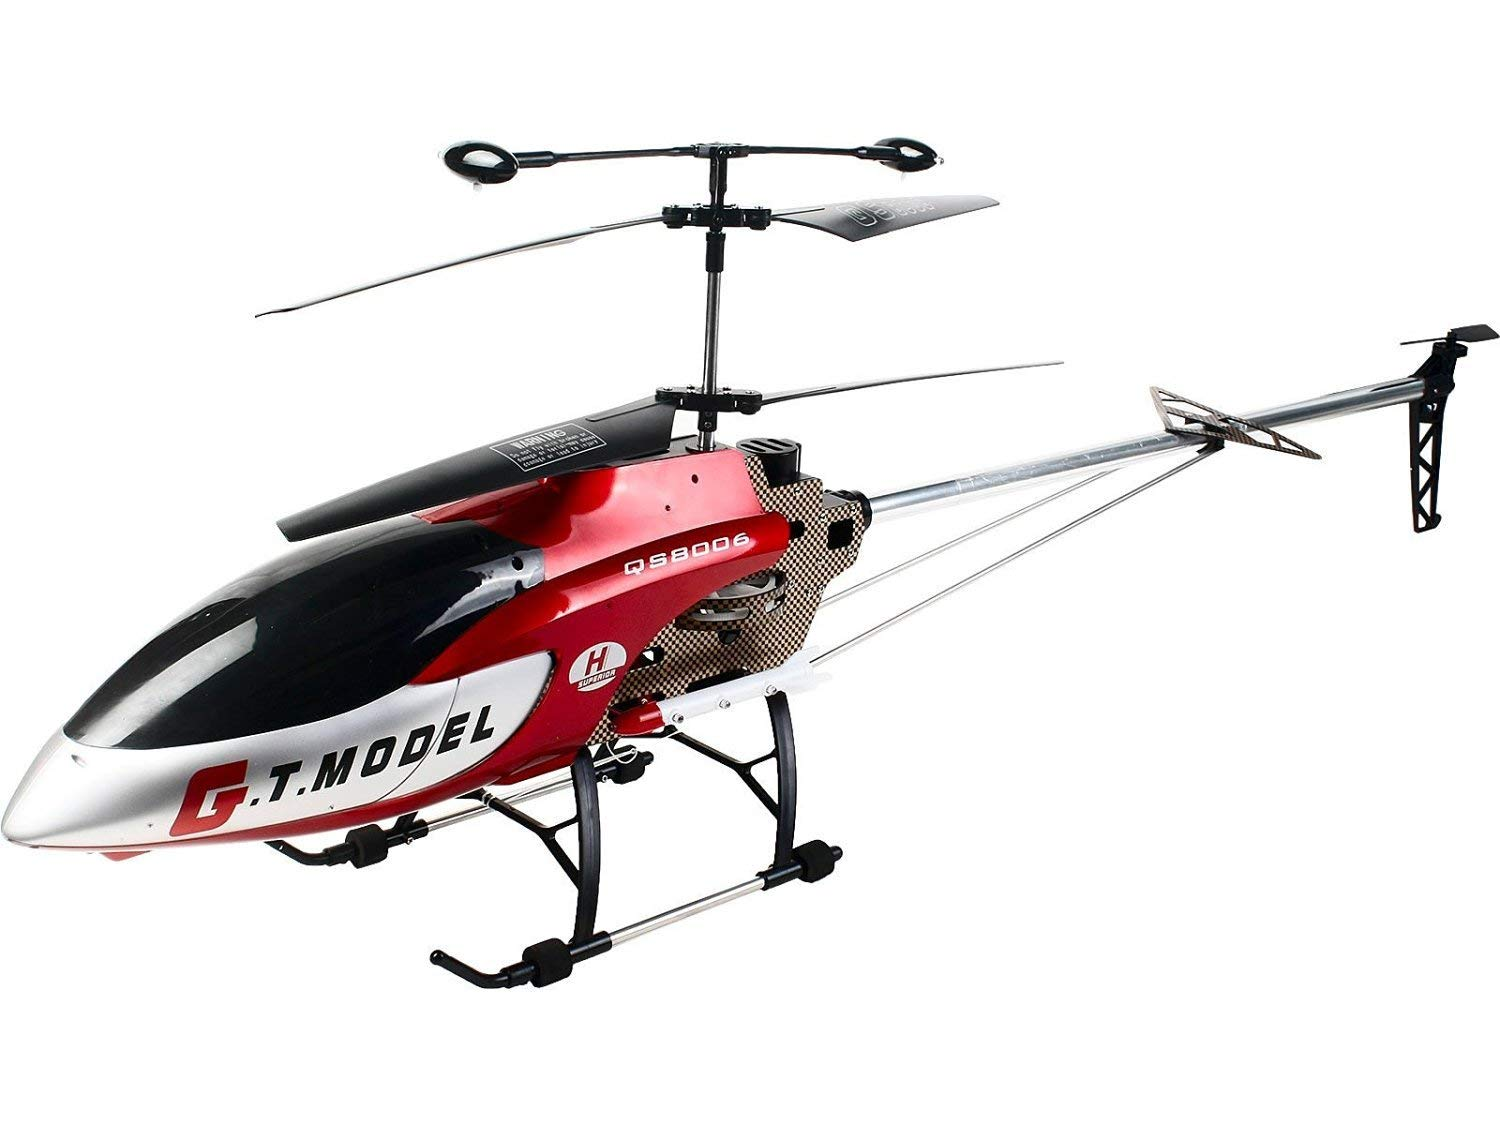 53-Inch-Extra-Large-GT-QS8006-2-Speed-3.5-Ch-RC-Helicopter